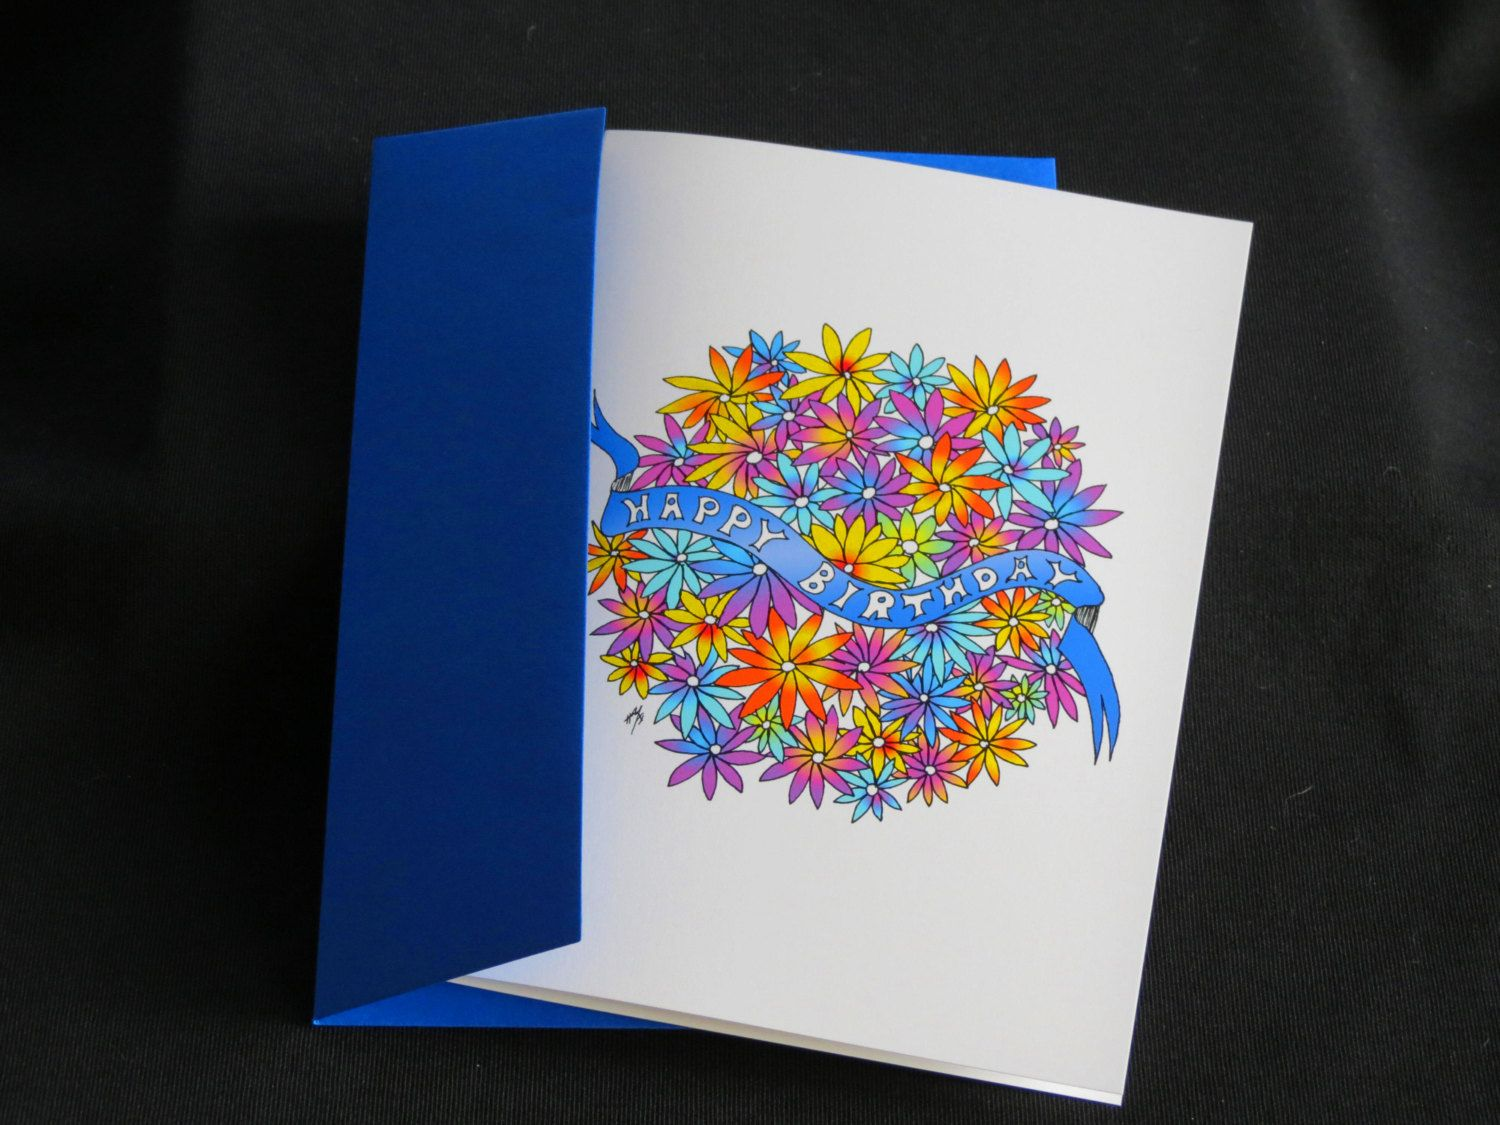 "Blank Art Card - ""Happy Birthday"" - 5 x 7 - Mandala - Floral - Colorful - Whimsical - Joyful - Fun - Cheerful by CreateThriveGrow on Etsy https://www.etsy.com/listing/254985279/blank-art-card-happy-birthday-5-x-7"